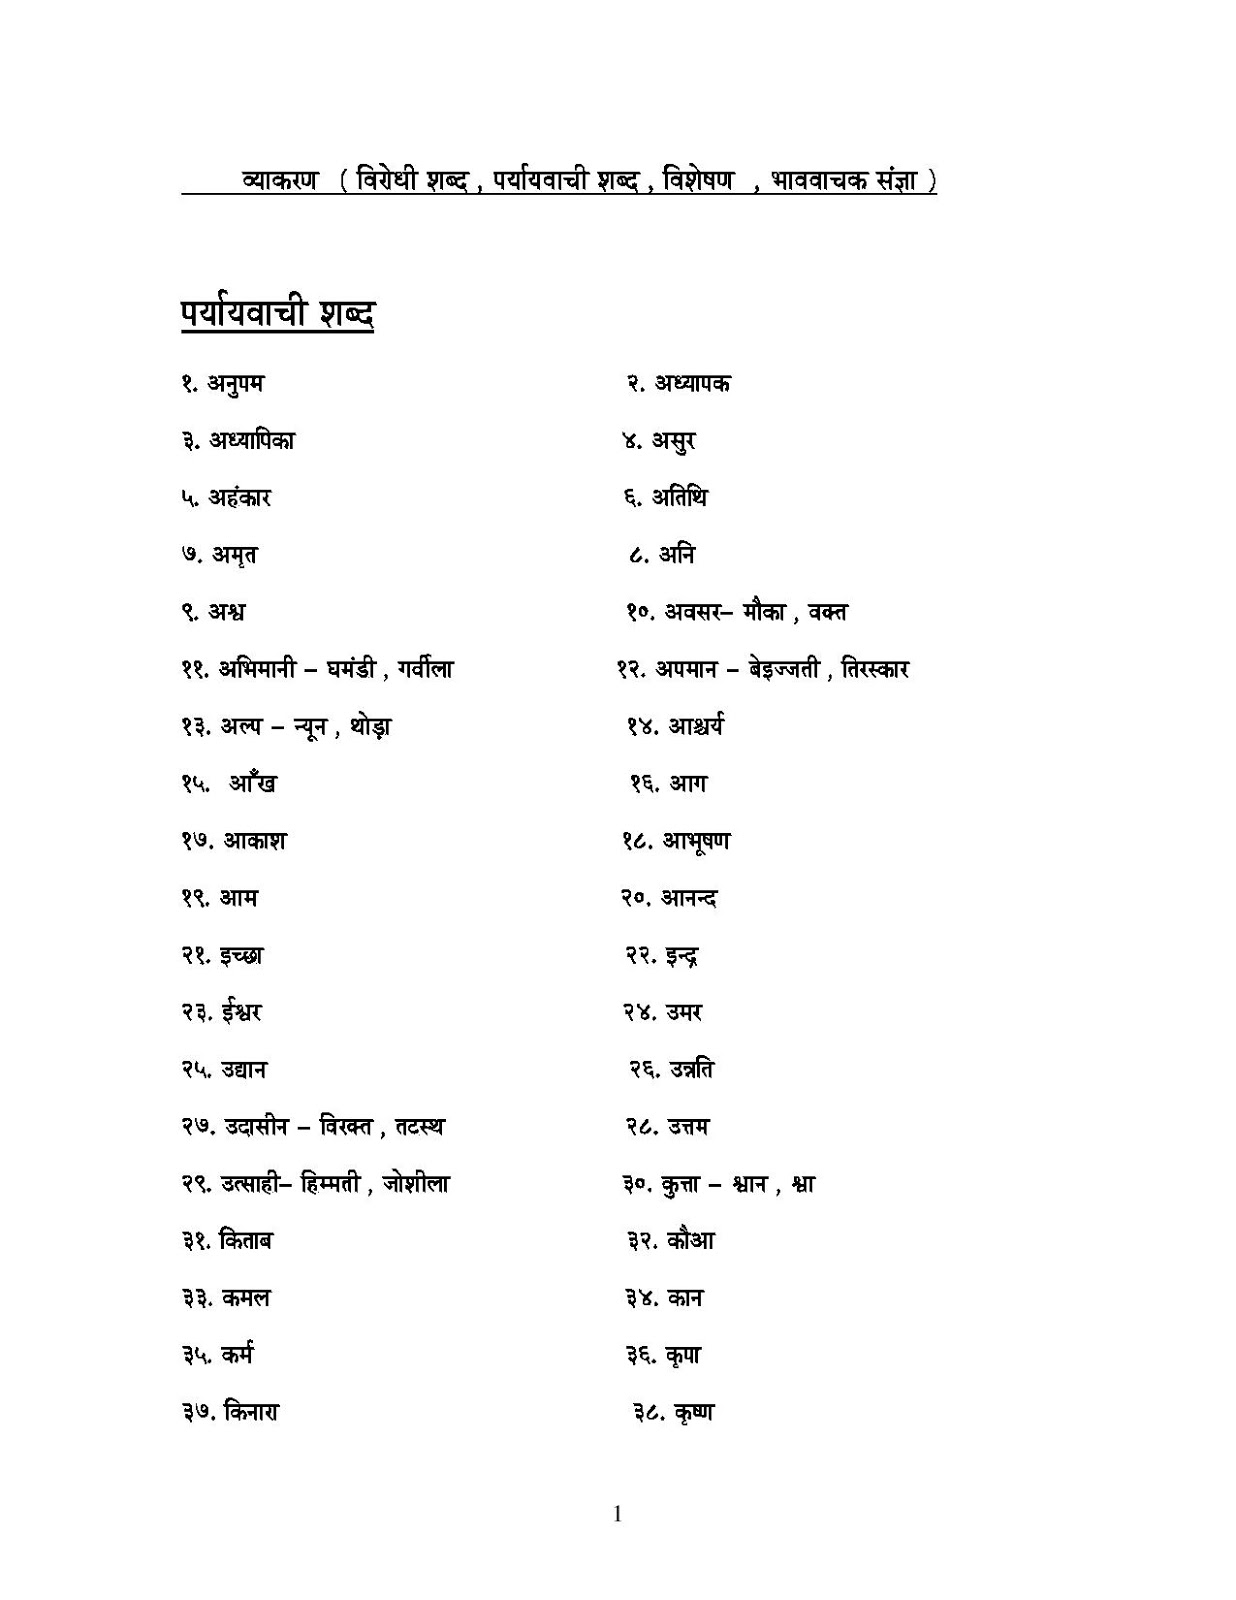 Hindi Grammar Work Sheet Collection For Classes 5 6 7 Amp 8 Grammar Work Sheet Containing